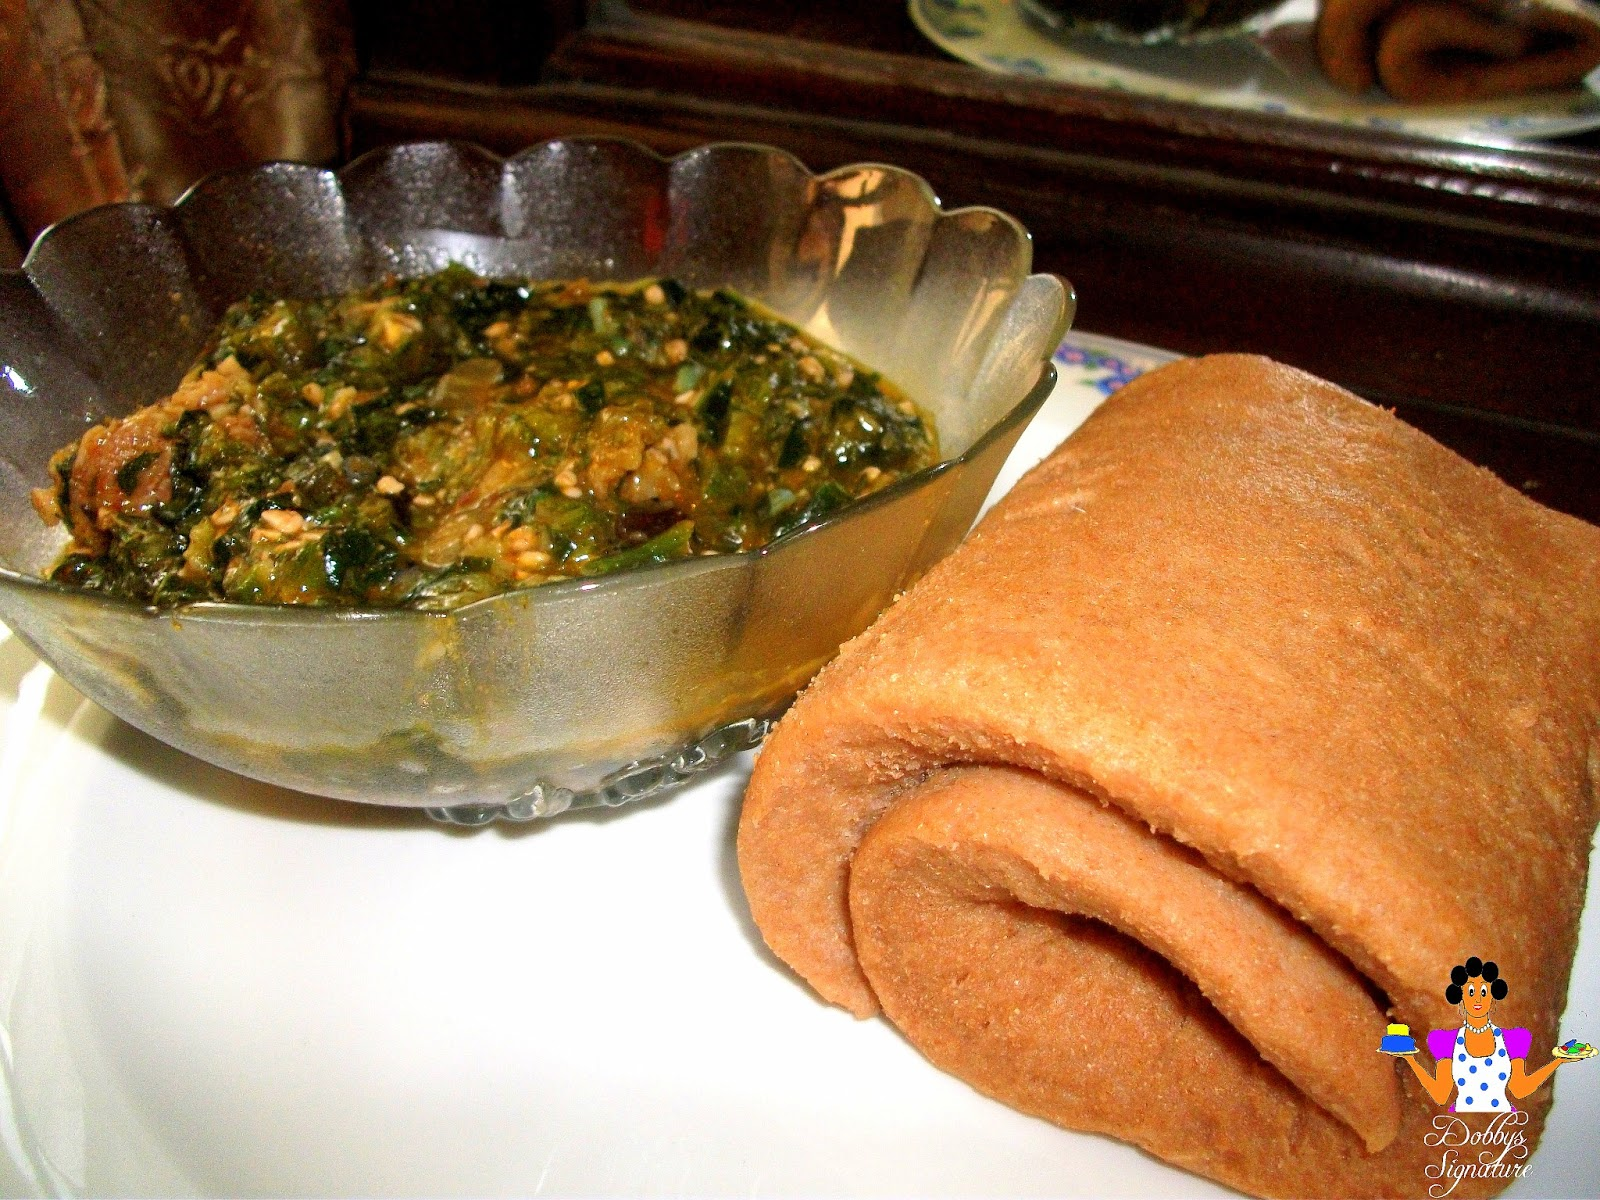 Dobbys signature nigerian food blog i nigerian food recipes i click to view my rolled wheat with okra soup recipe forumfinder Choice Image